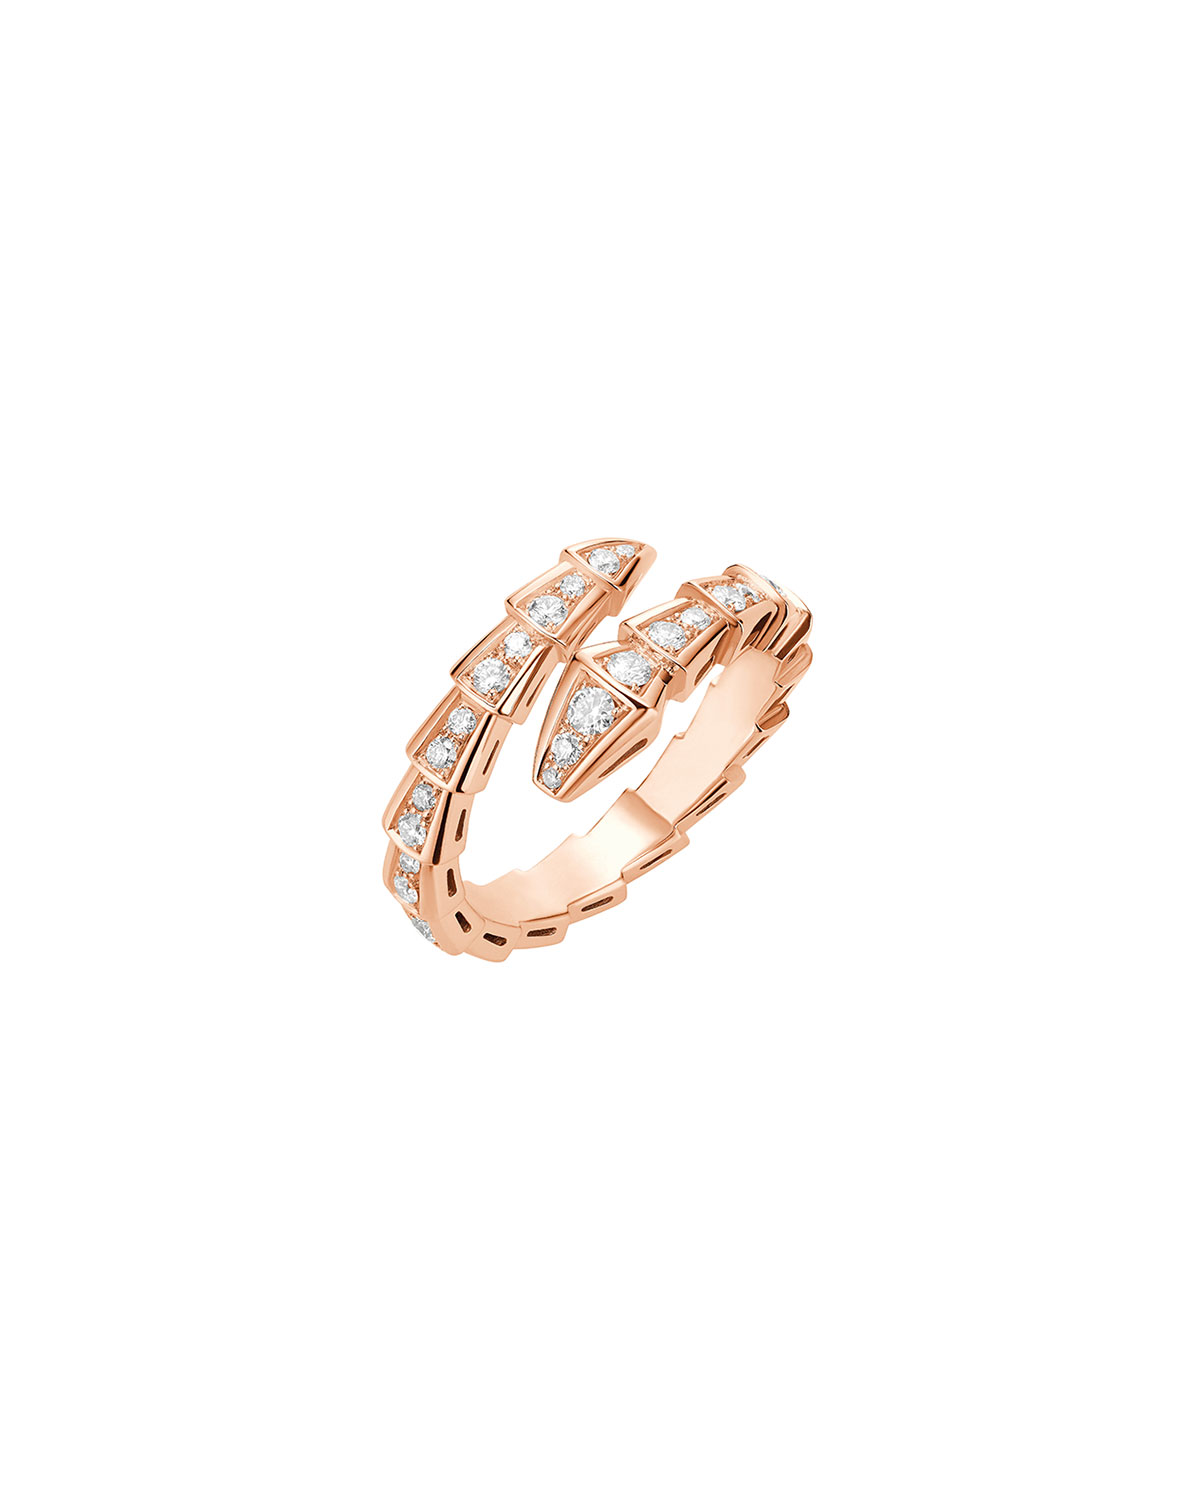 Serpenti Ring in 18k Rose Gold and Diamonds